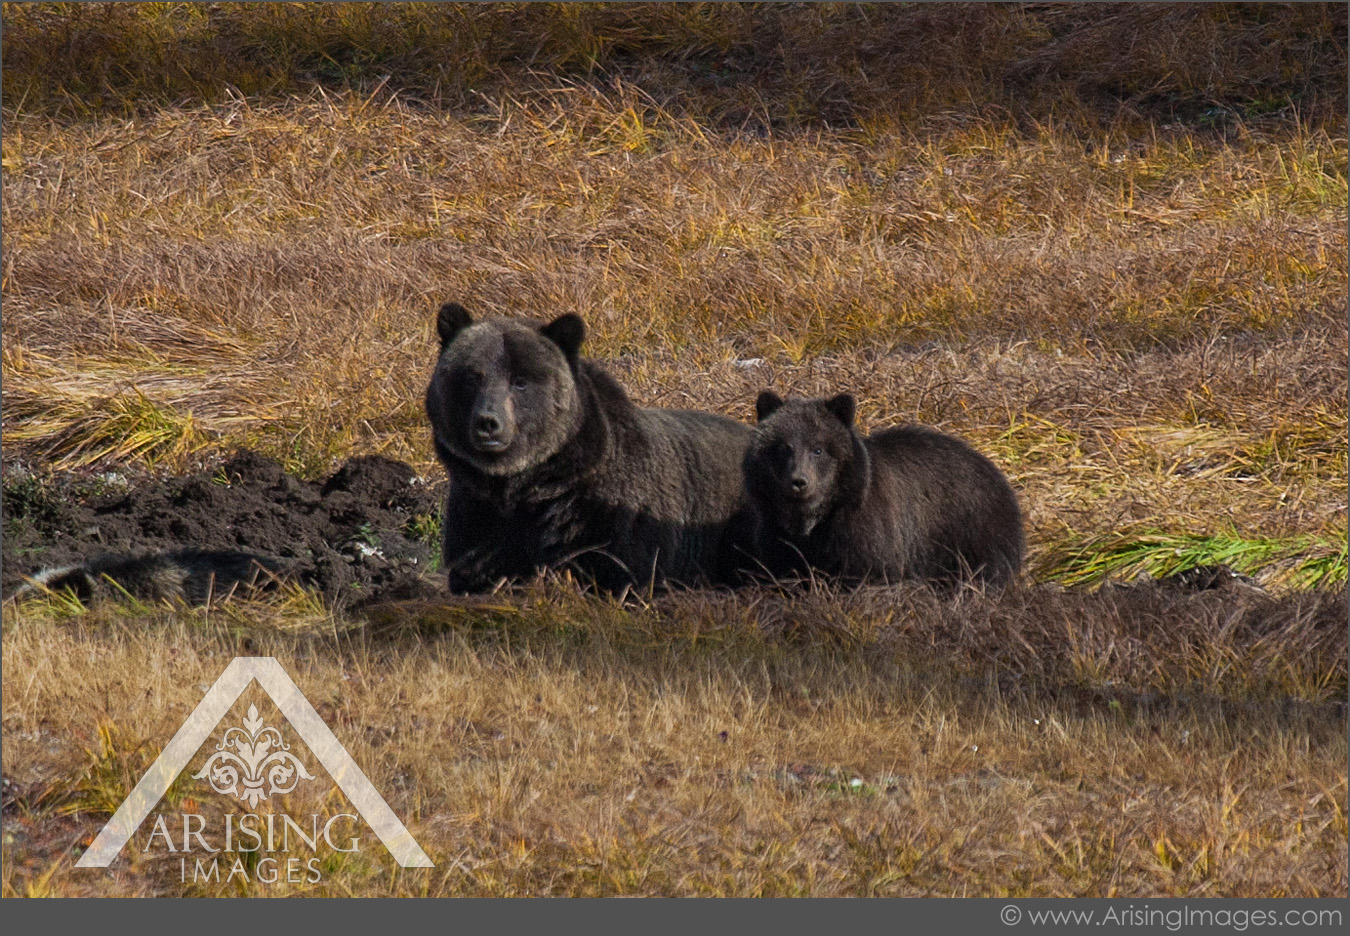 Grizzly Bears, Alberta, Canada